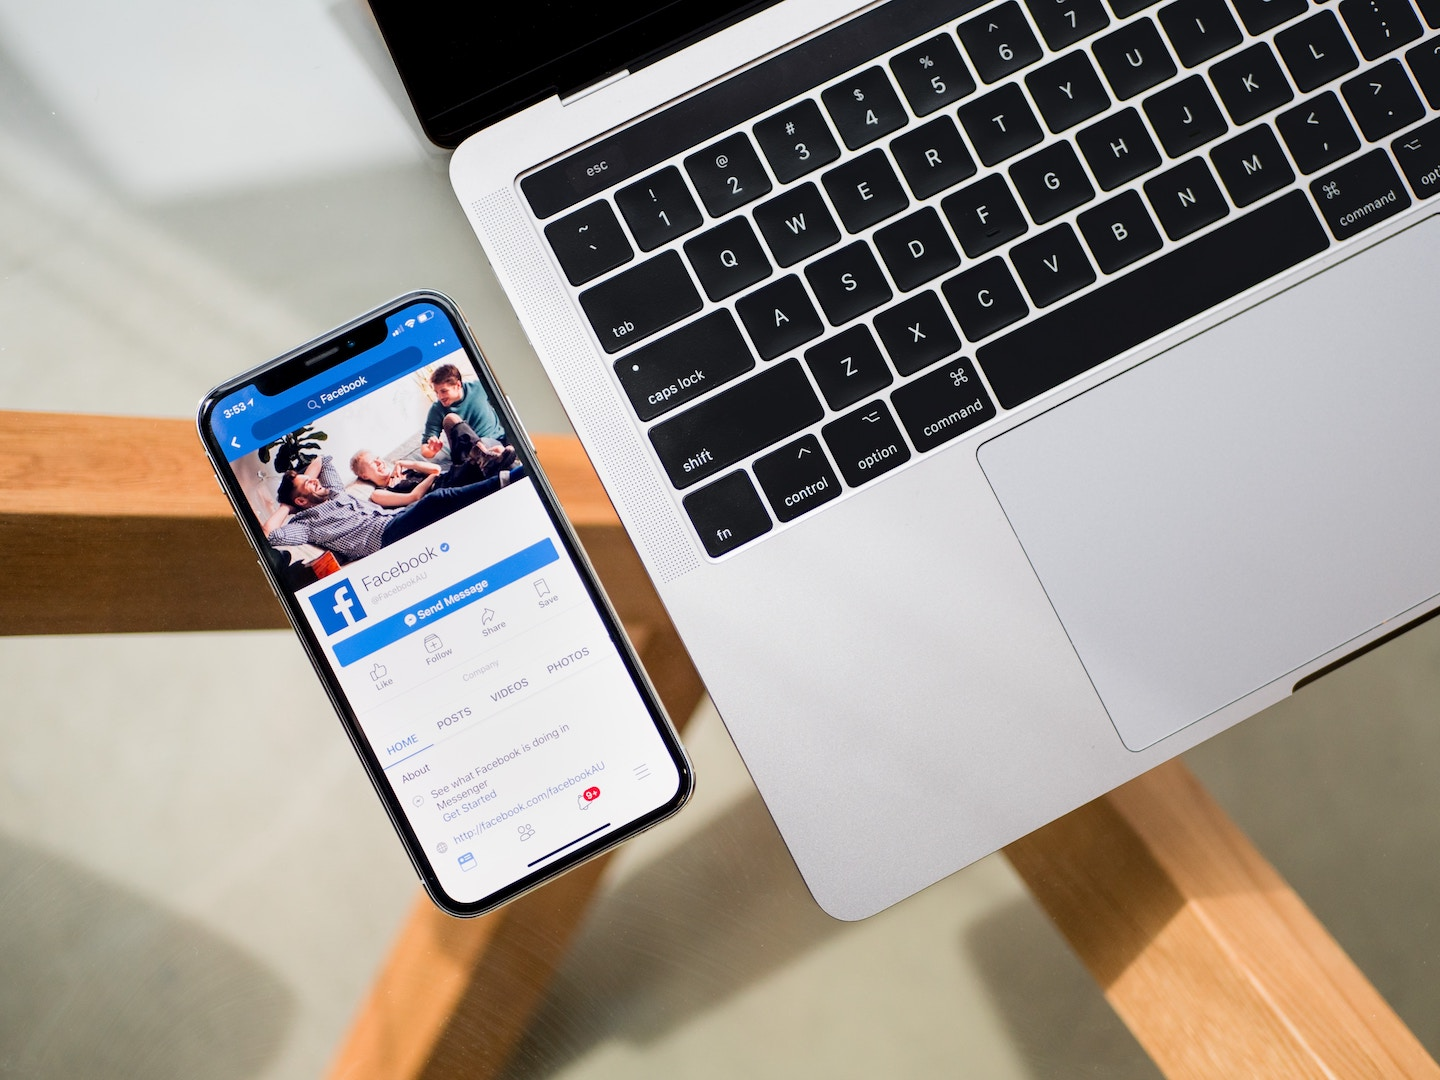 What Facebook News Feed Overhaul Means For Small Business - YFS Magazine